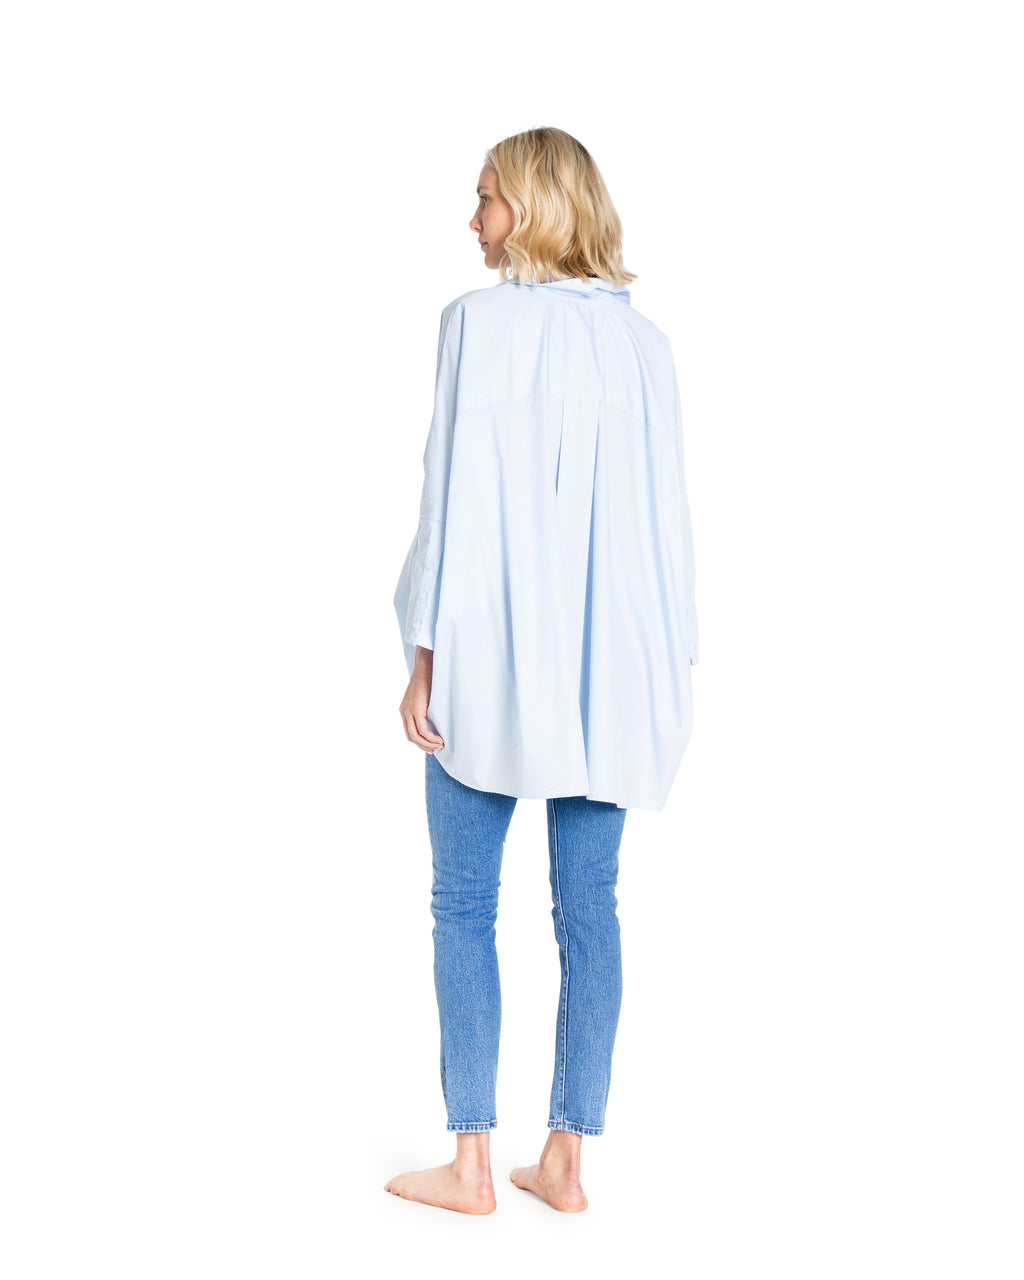 no. 1010 blue oversized button down shirt